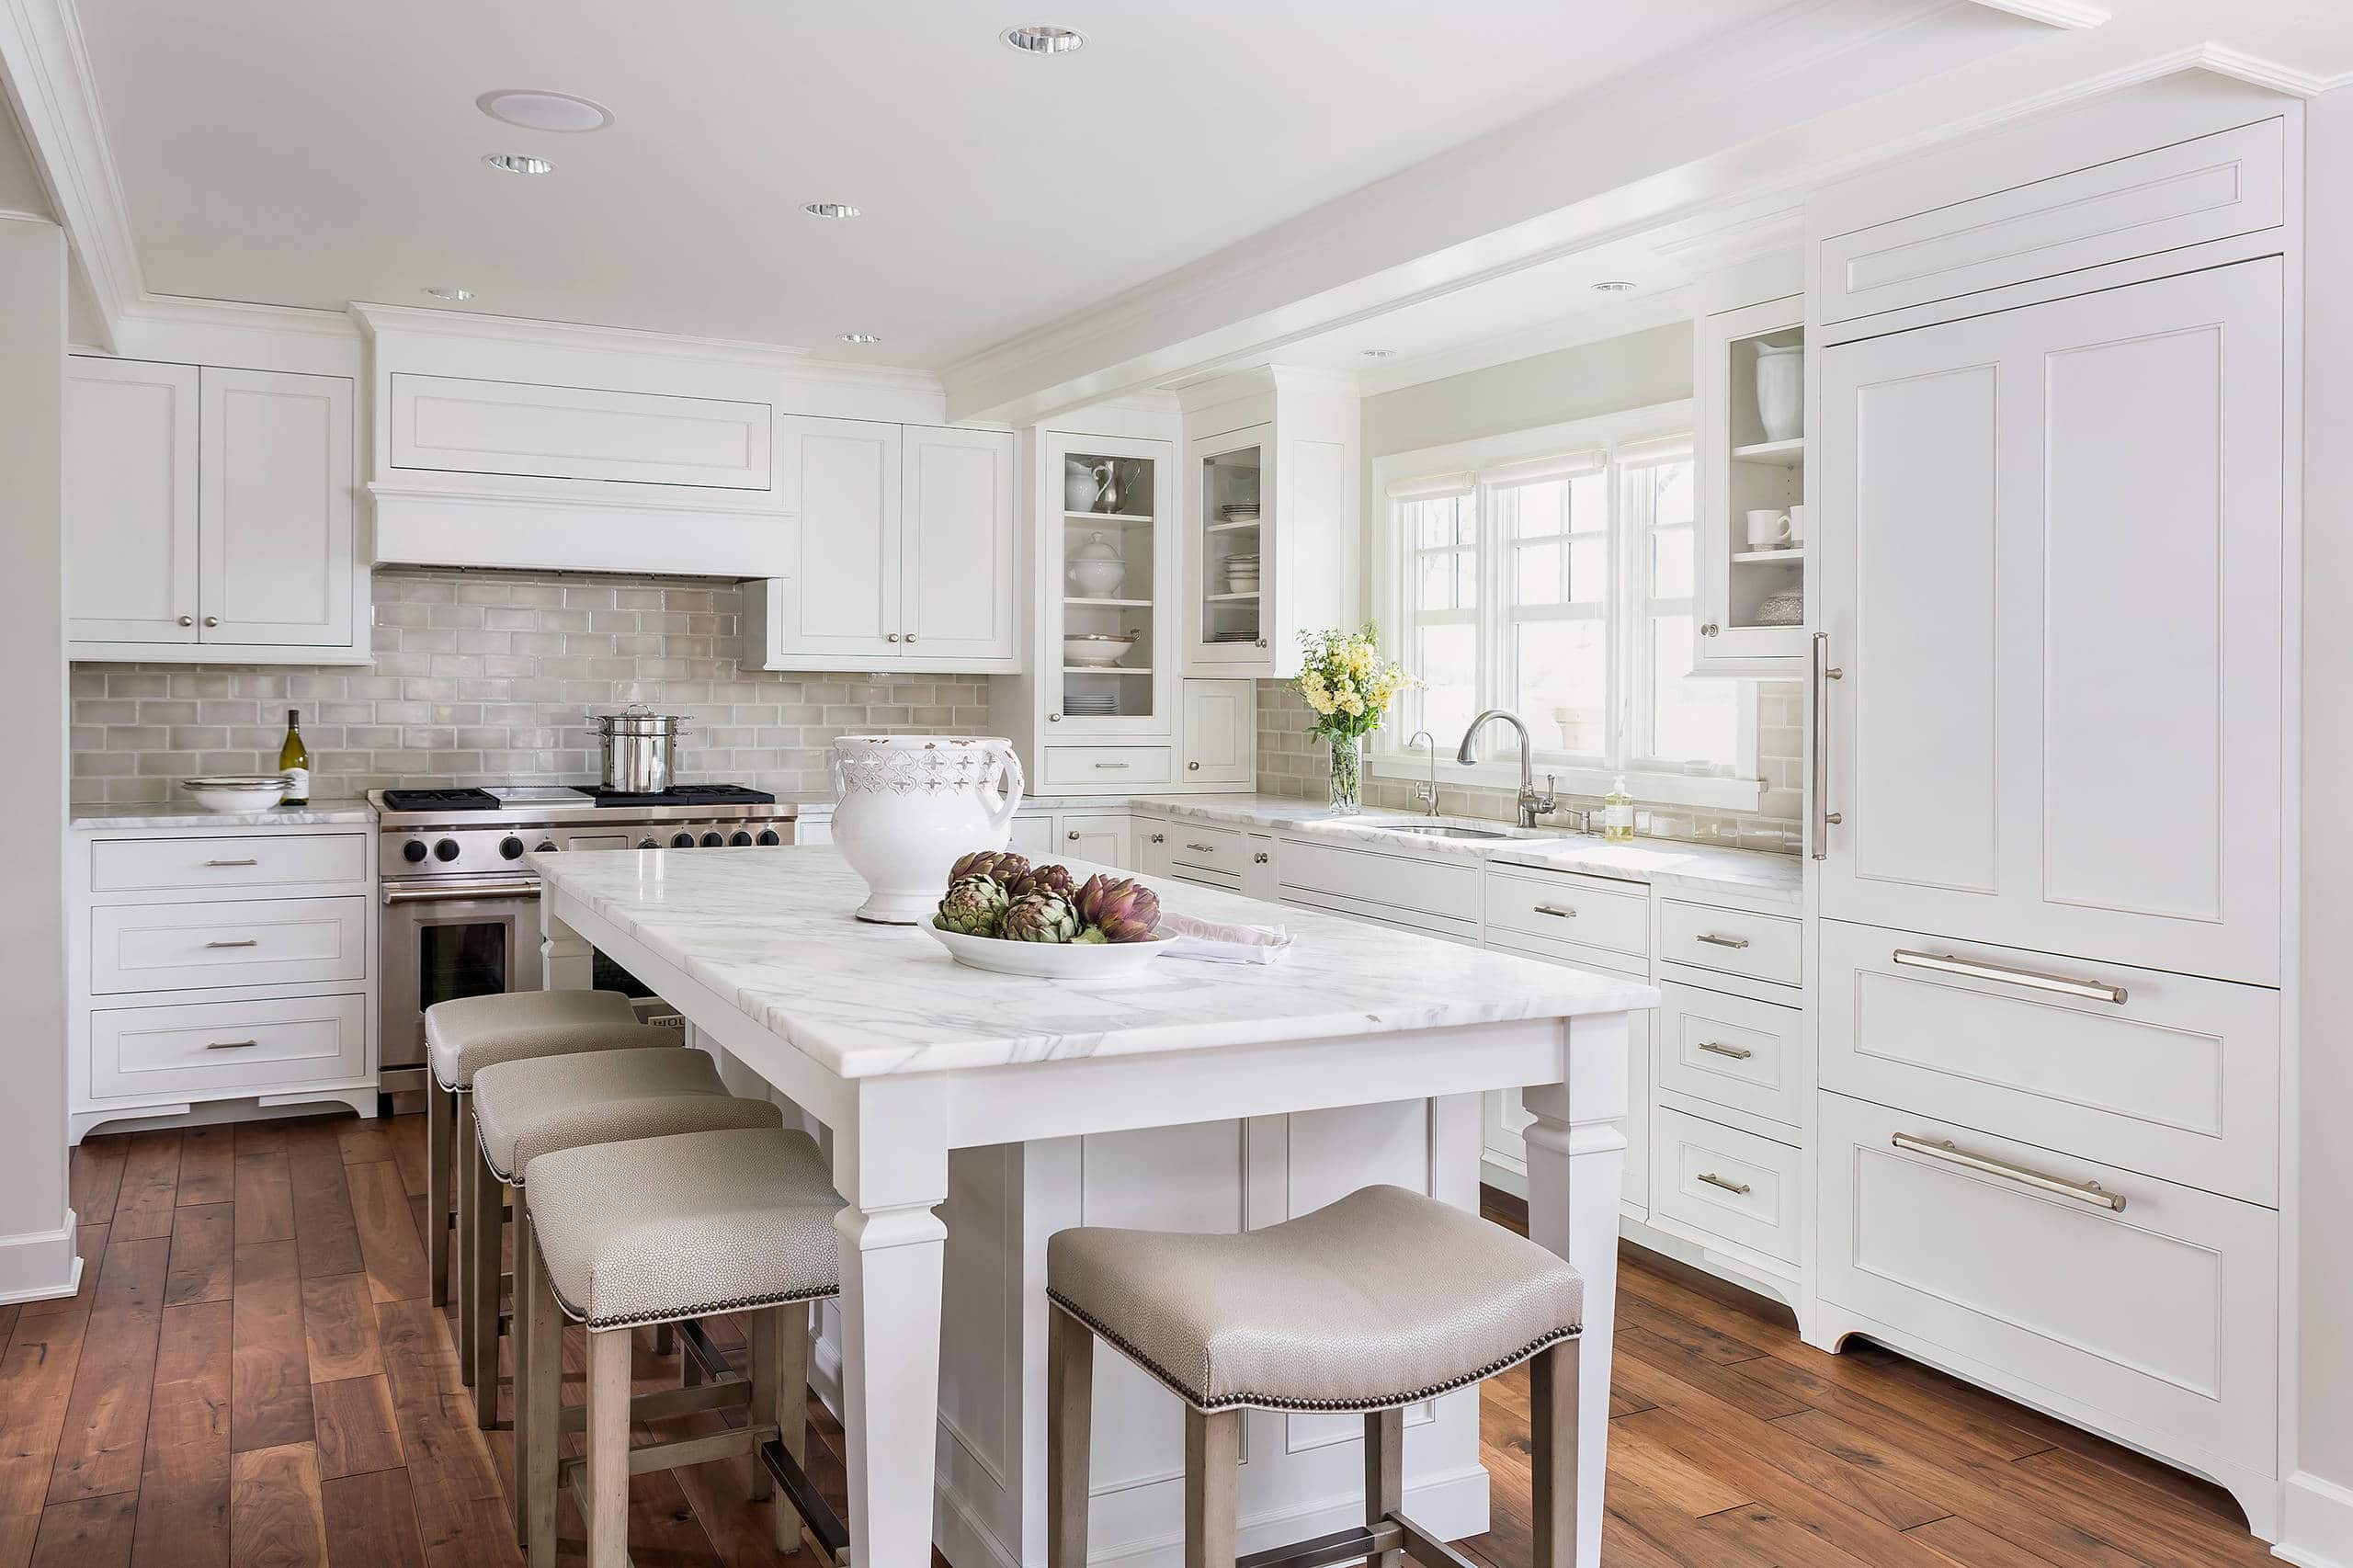 10 Ways to Natural Light Can Brighten Up Your Kitchen - Best ...